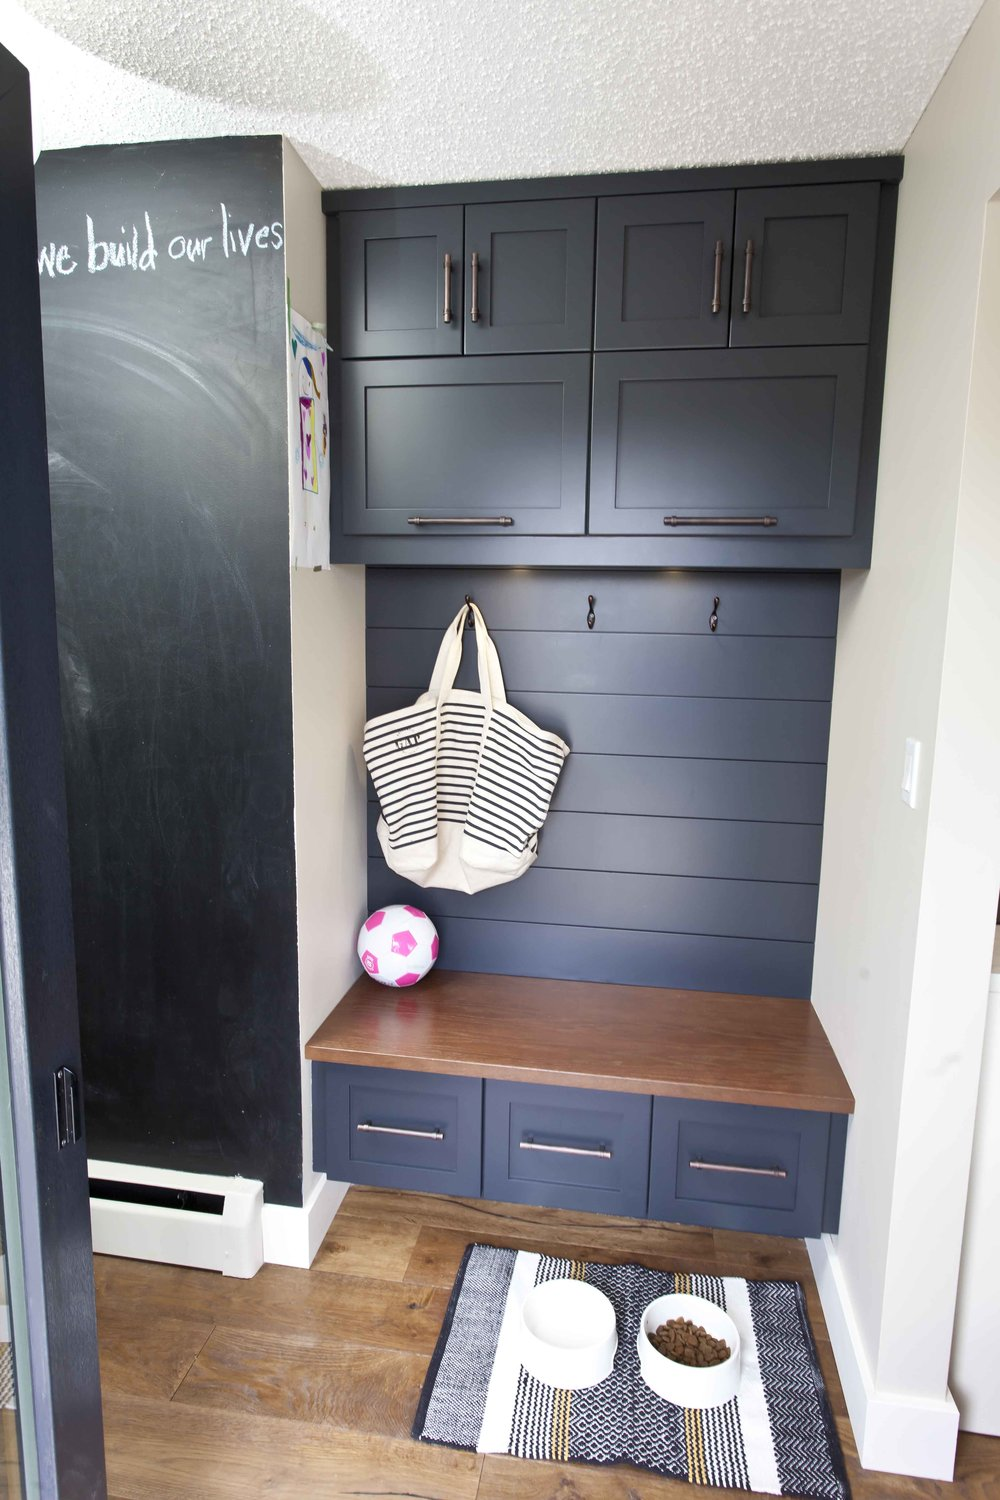 The back entry nook is converted into a functional storage space and feeding station for the dog.